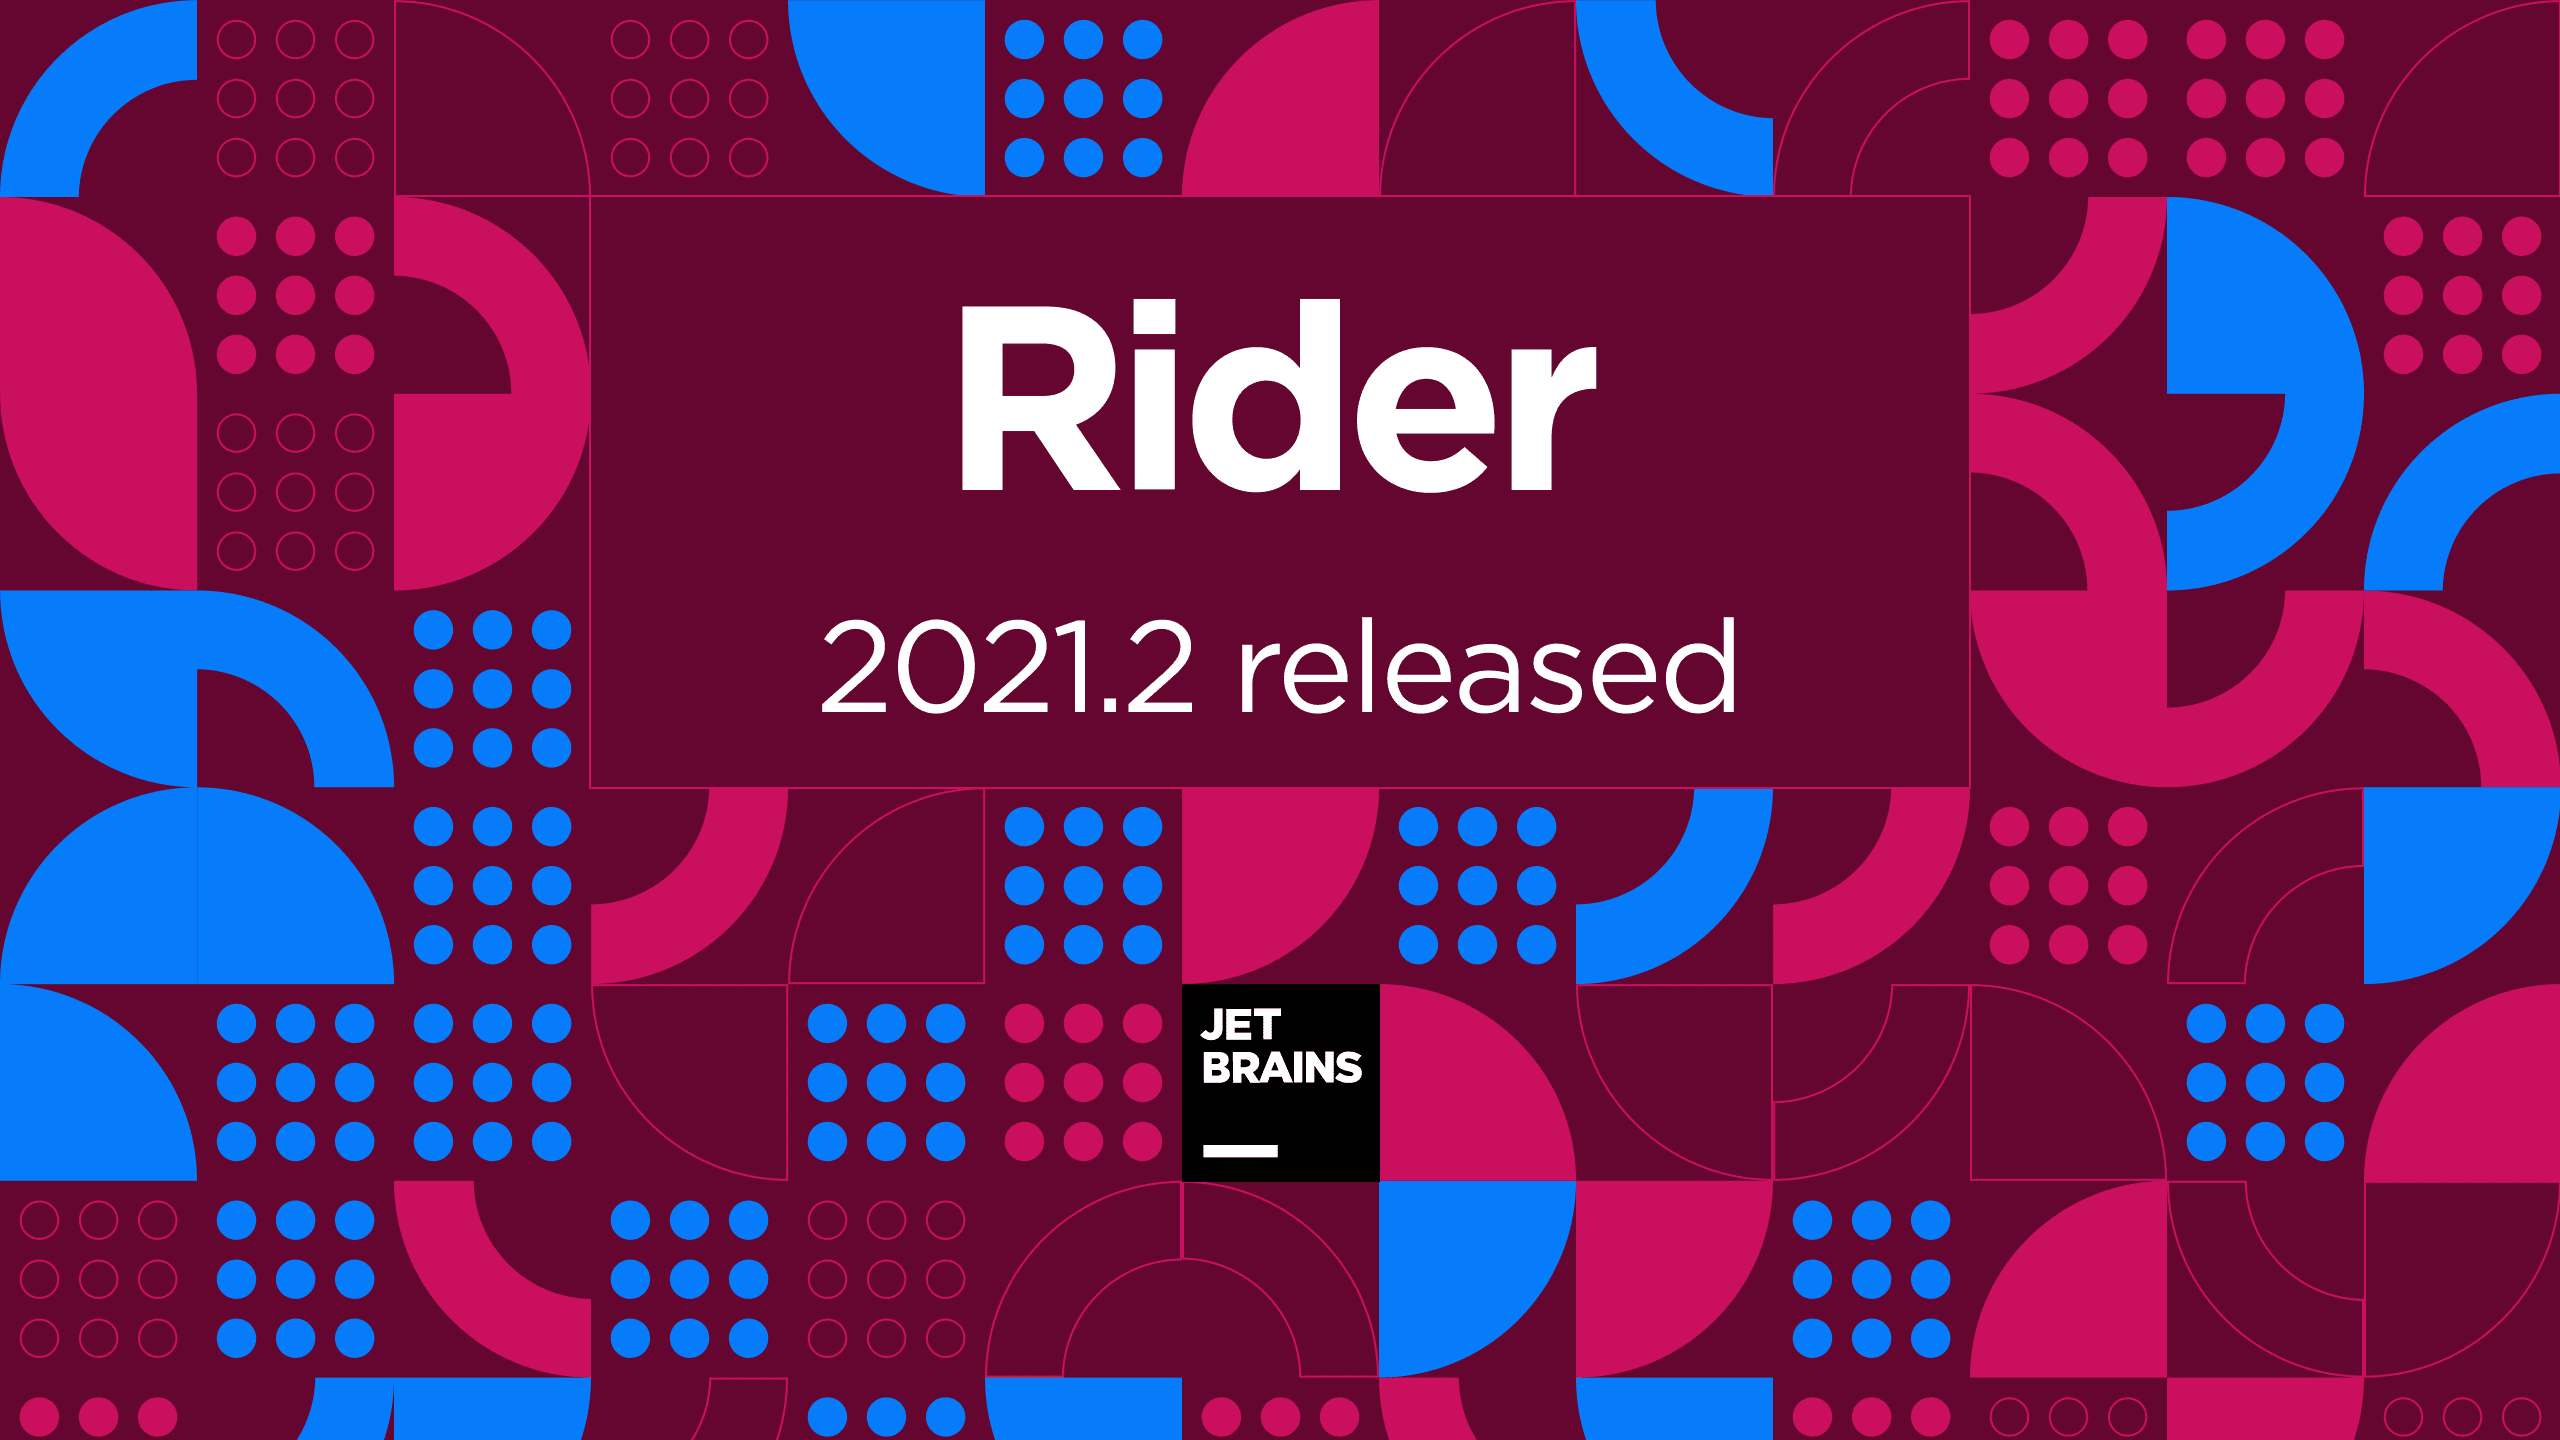 Rider 2021.2 released